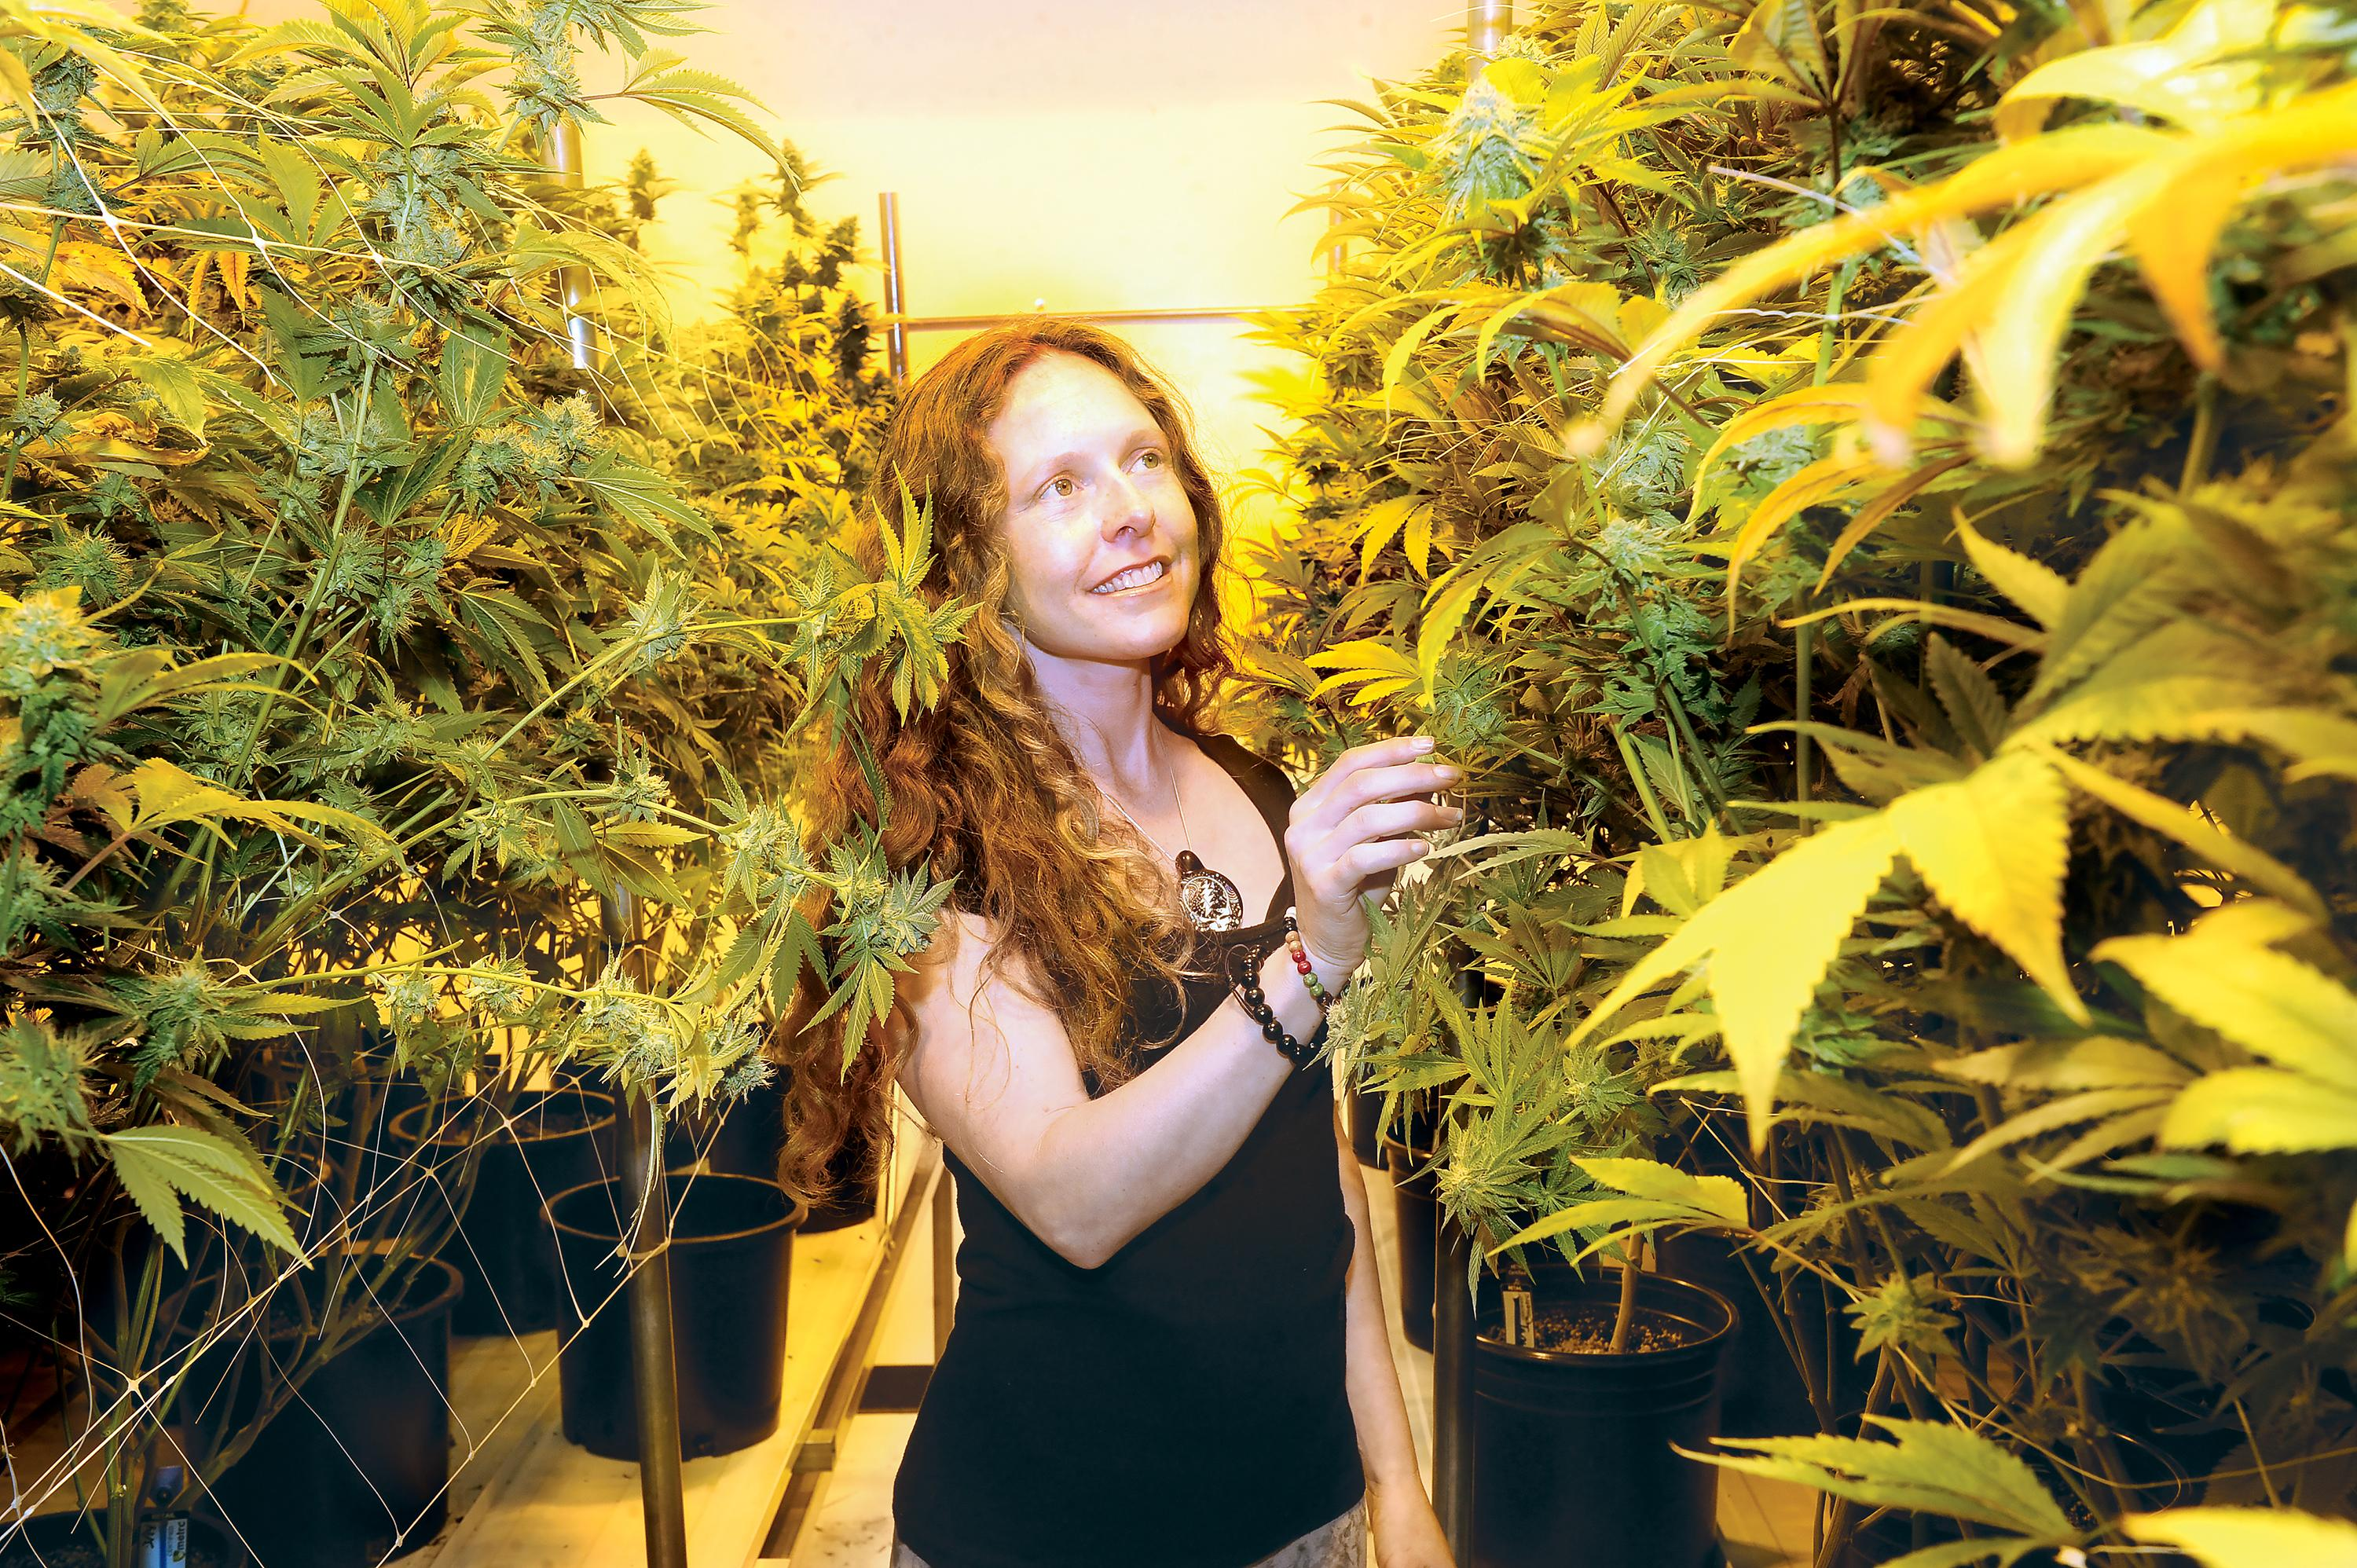 Photo by Denise Baratta <br><p>Delia Gaia Devi wears many hats in the cannabis industry, including brand ambassador for Willie's Reserve, operations coordinator for Sovereign Cannabis, a wholesale and distribution company, and chief executive of Ma'at Botanicals, which distributes CBD products nationwide. Here she is pictured in the indoor cannabis garden known as The Factory in Ashland. </p>